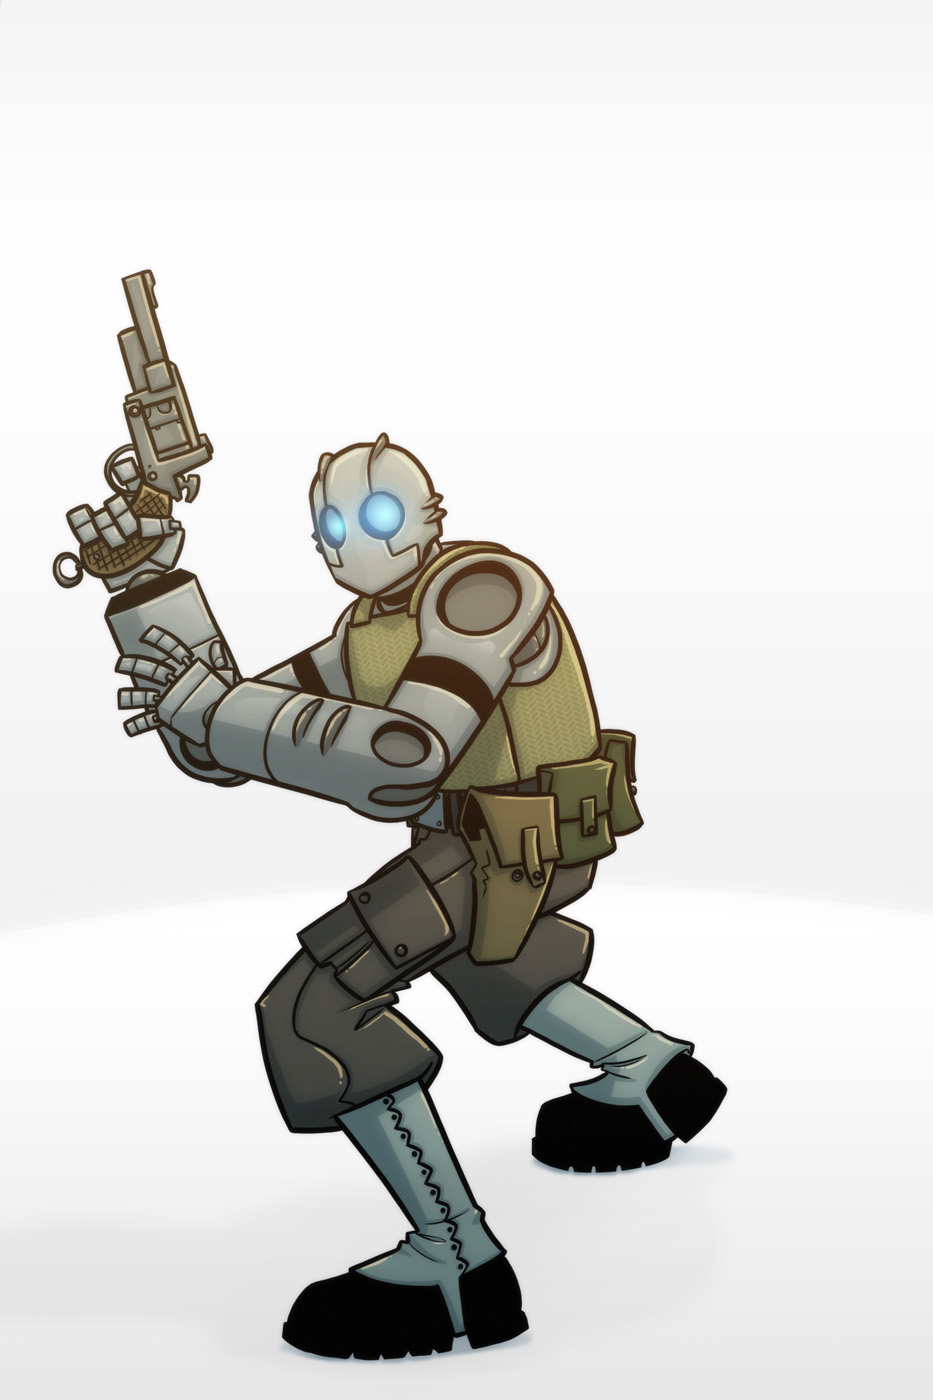 <b>Atomic Robo</b> by Josh-Ulrich on DeviantArt